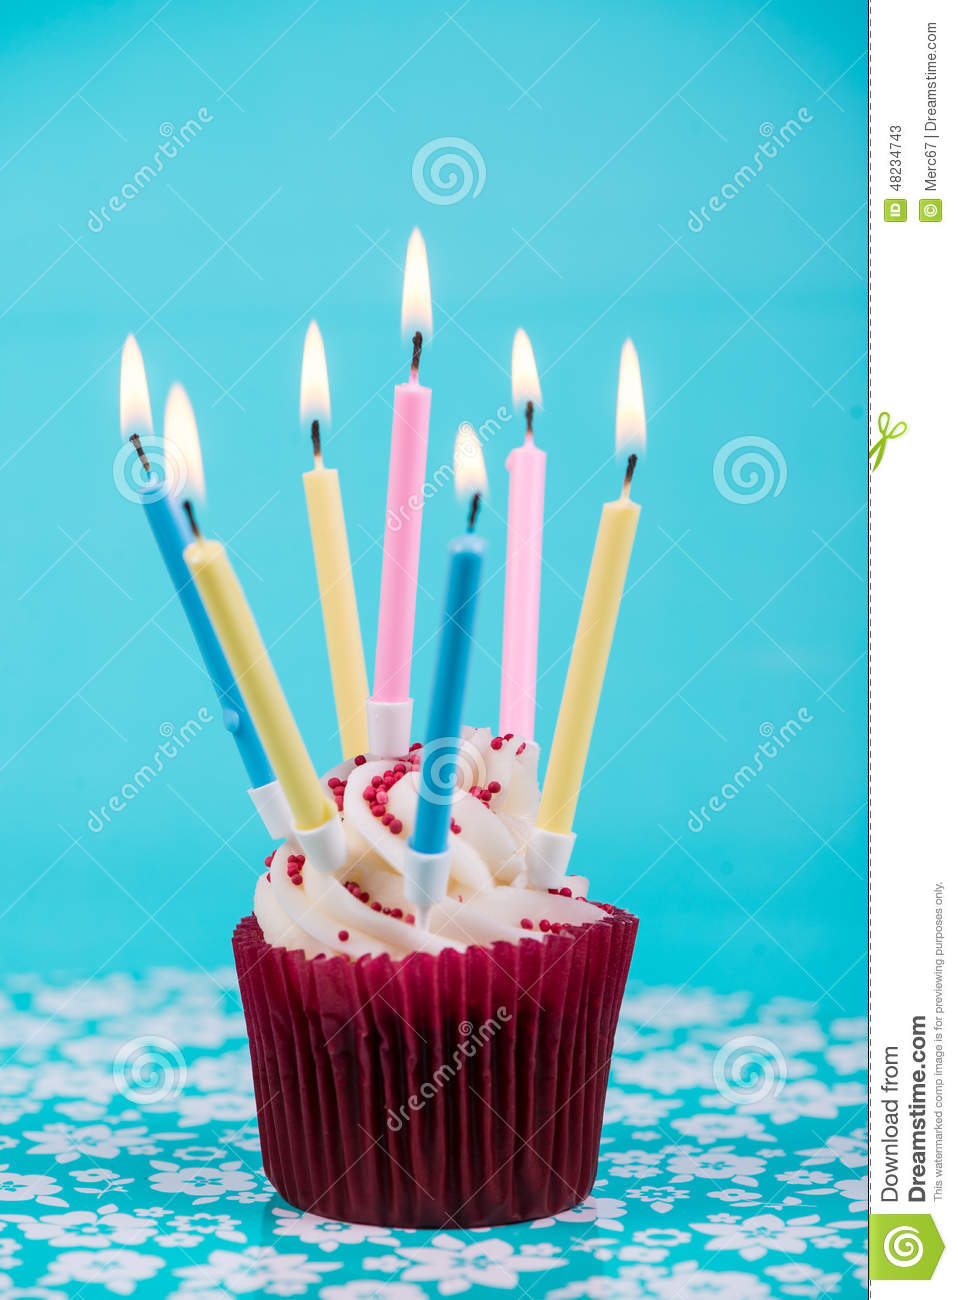 Birthday Cup Cake With Many Candles Stock Photo - Image ...